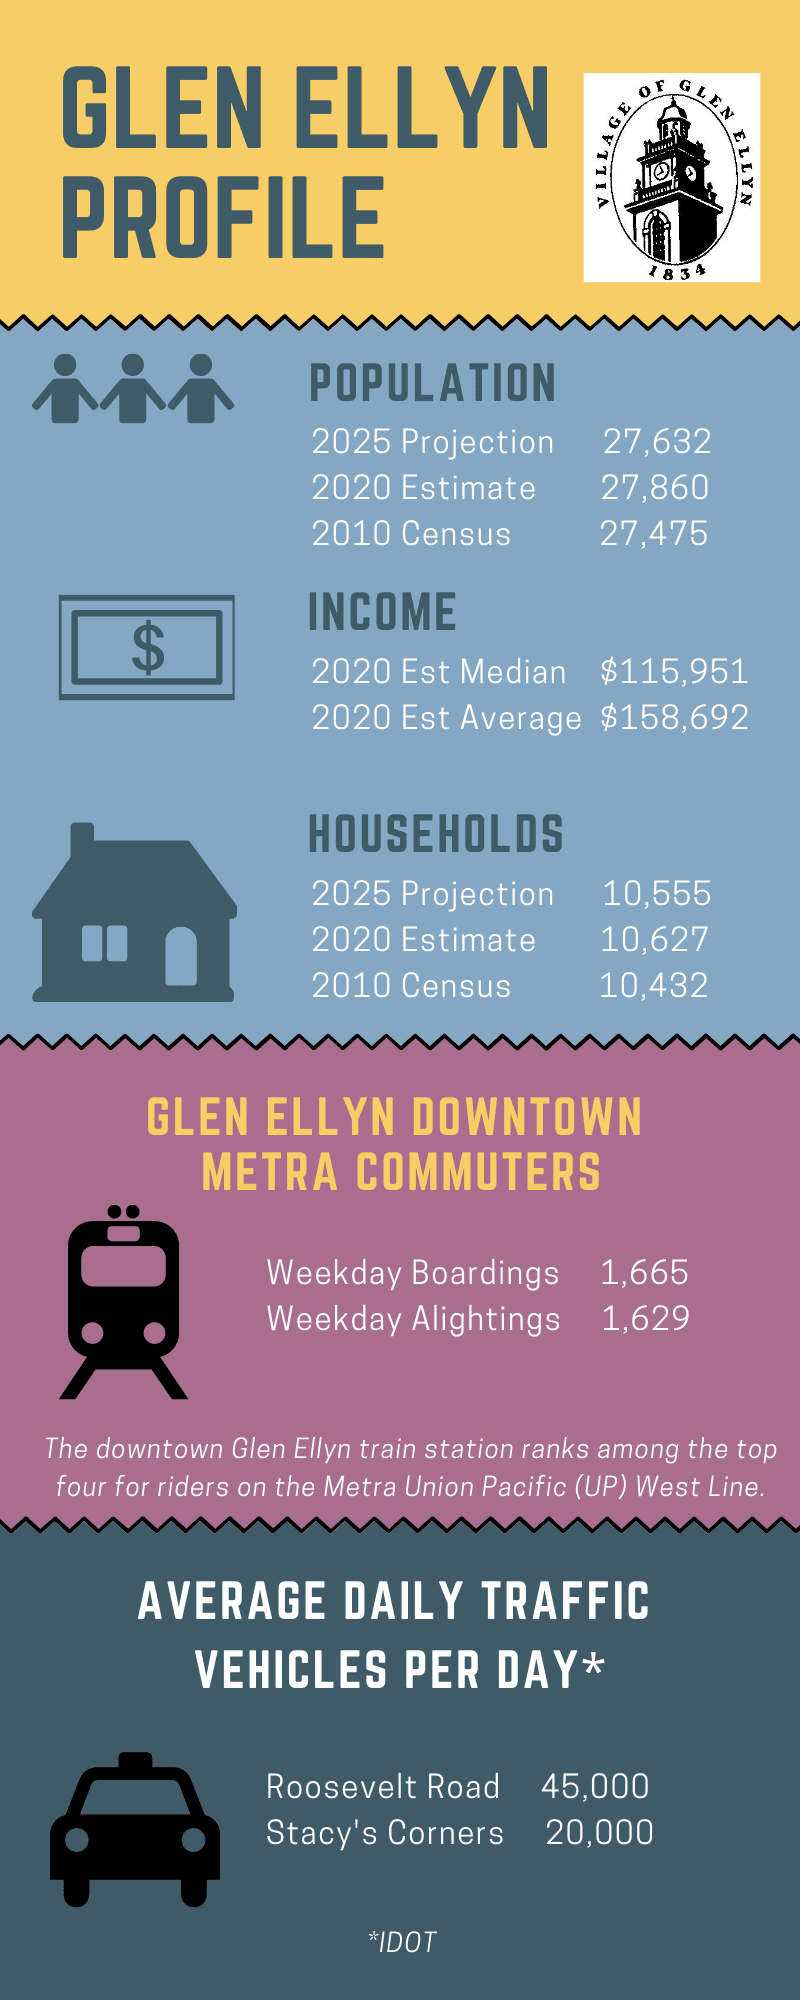 Glen Ellyn Demographic Profile